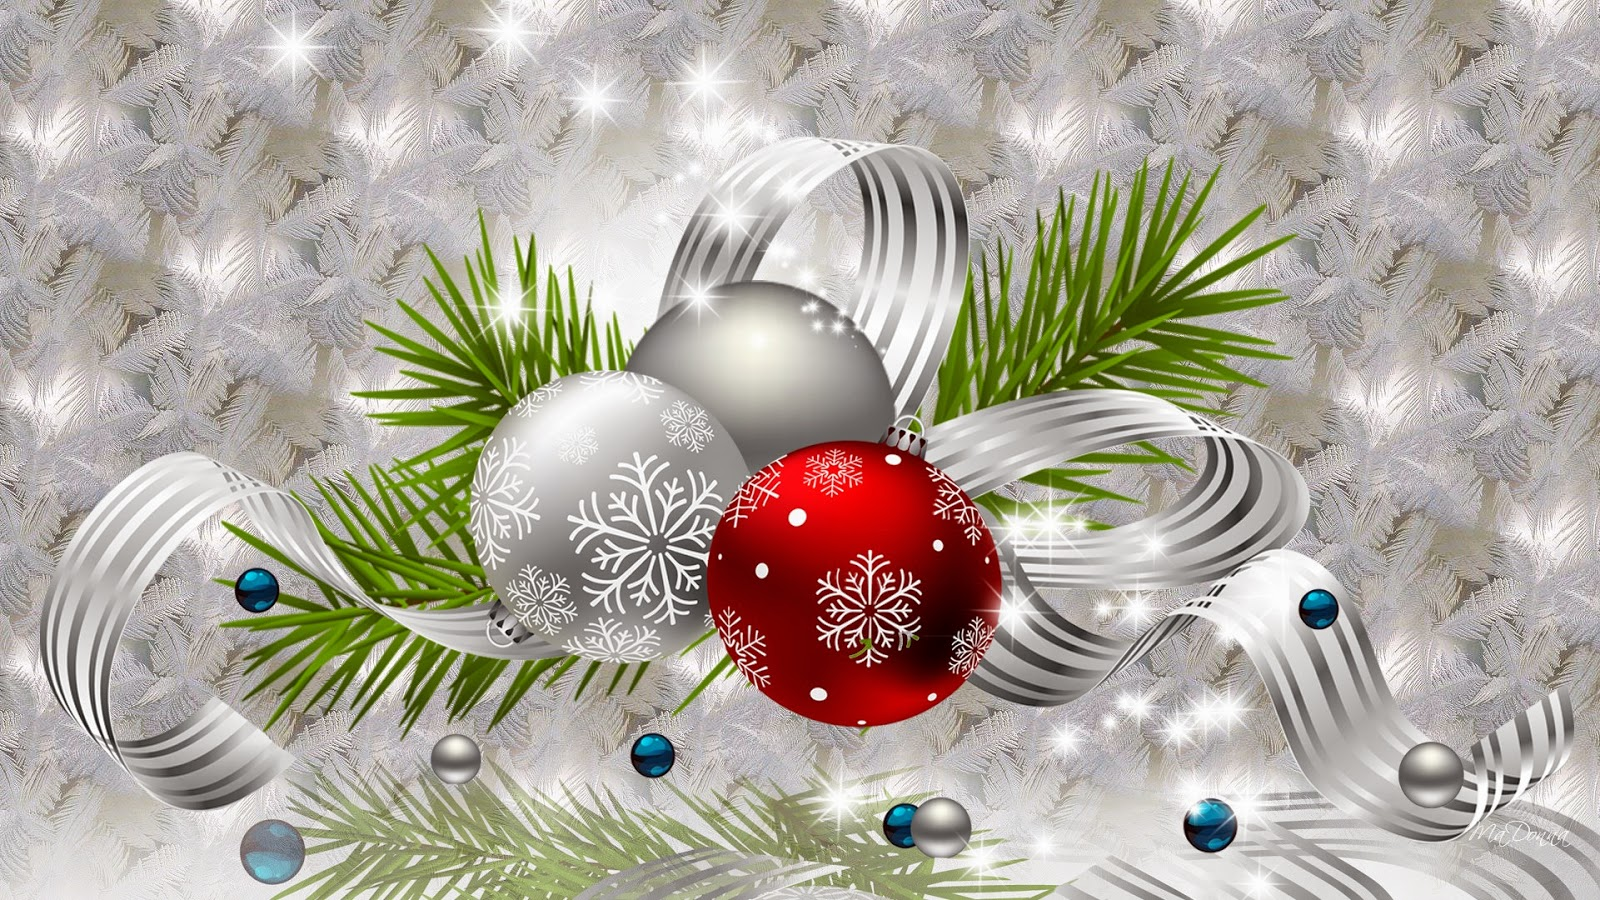 HD-Christmas-baubles-with-silver-background-abstract-design-image-picture.jpg